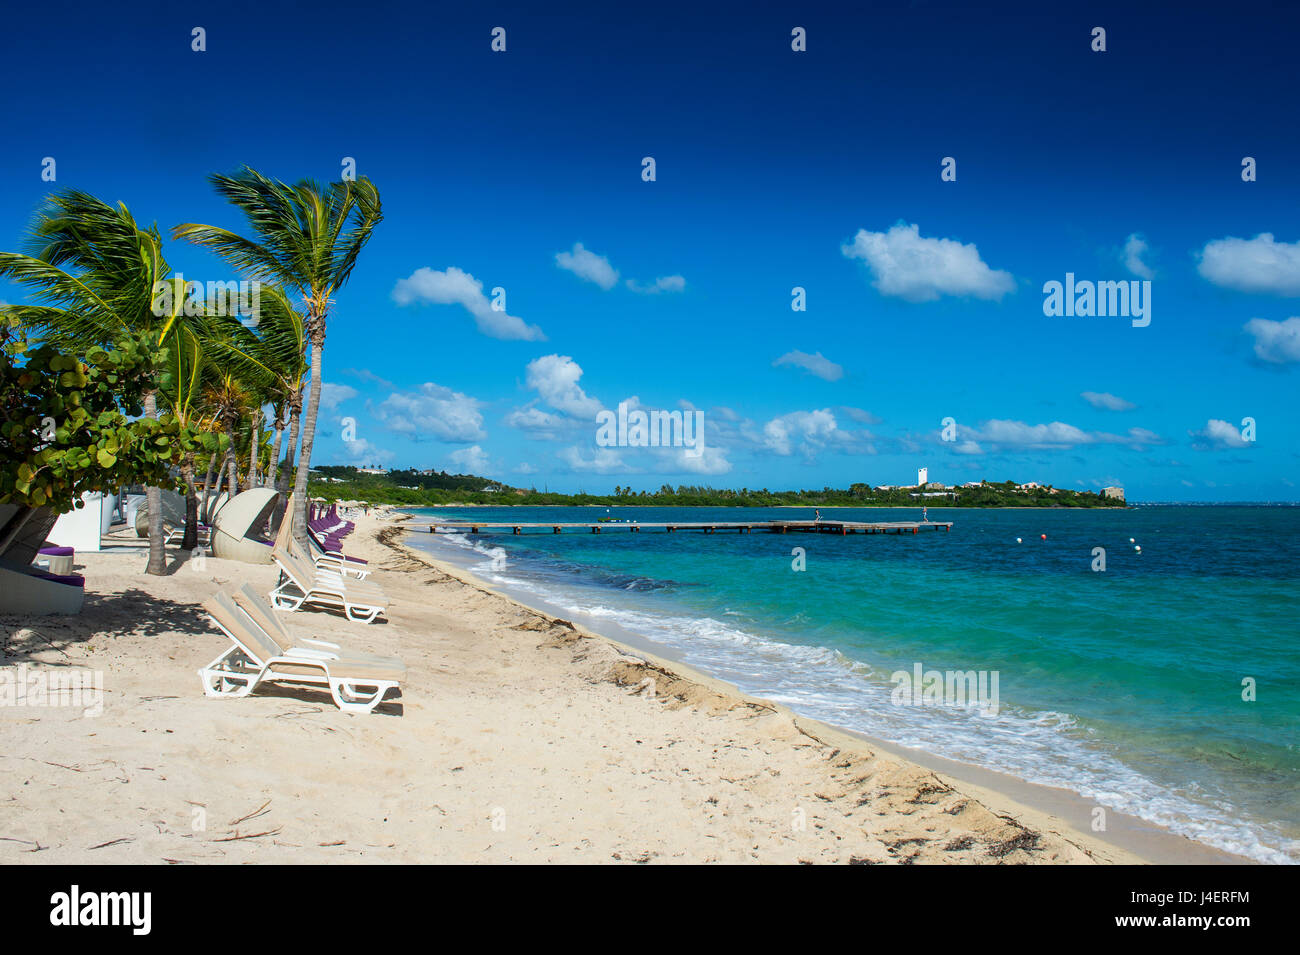 St. Martin, French territory, West Indies, Caribbean, Central America - Stock Image